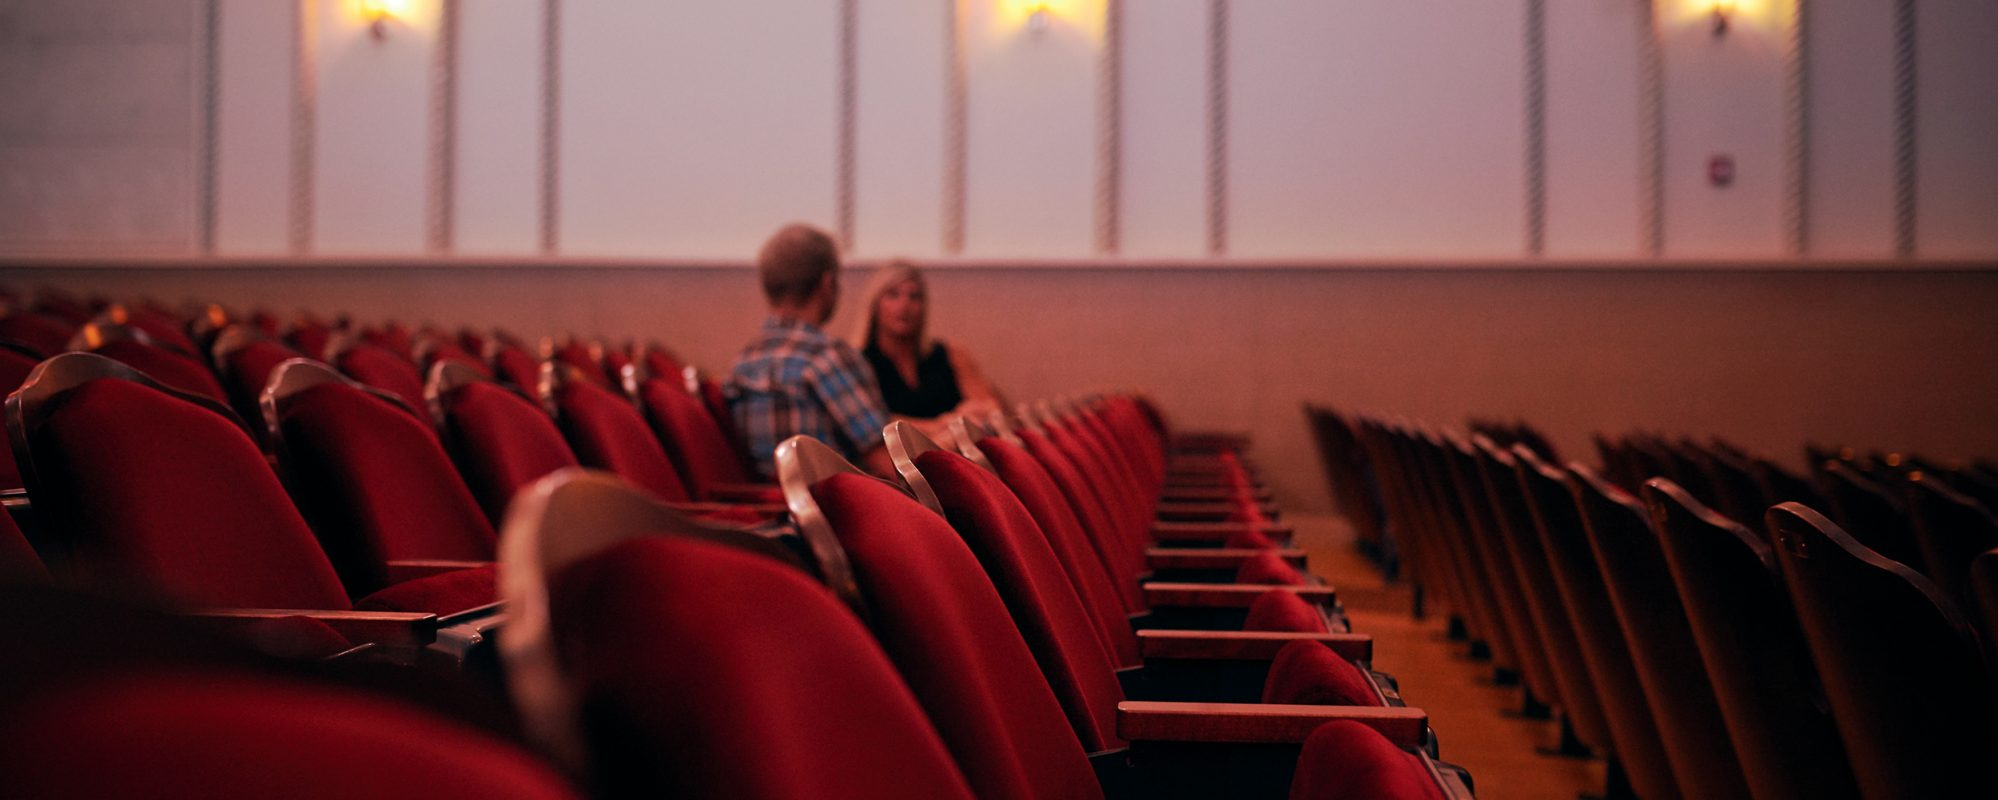 Image of two moviegoers talking in theater on Beene Garter's nonprofit tax page